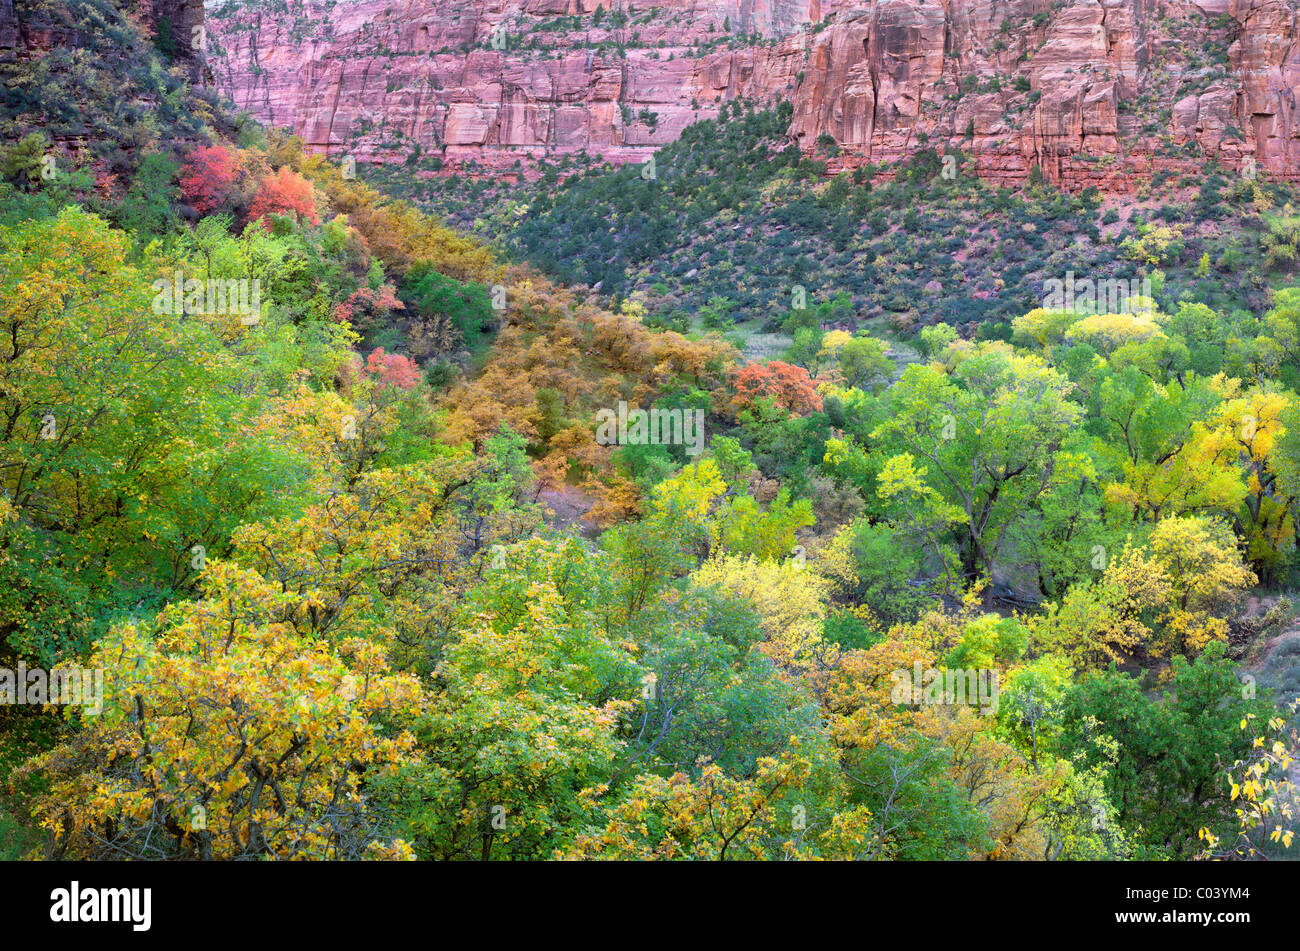 View of valley in Zion National Park with fall colors. Utah - Stock Image